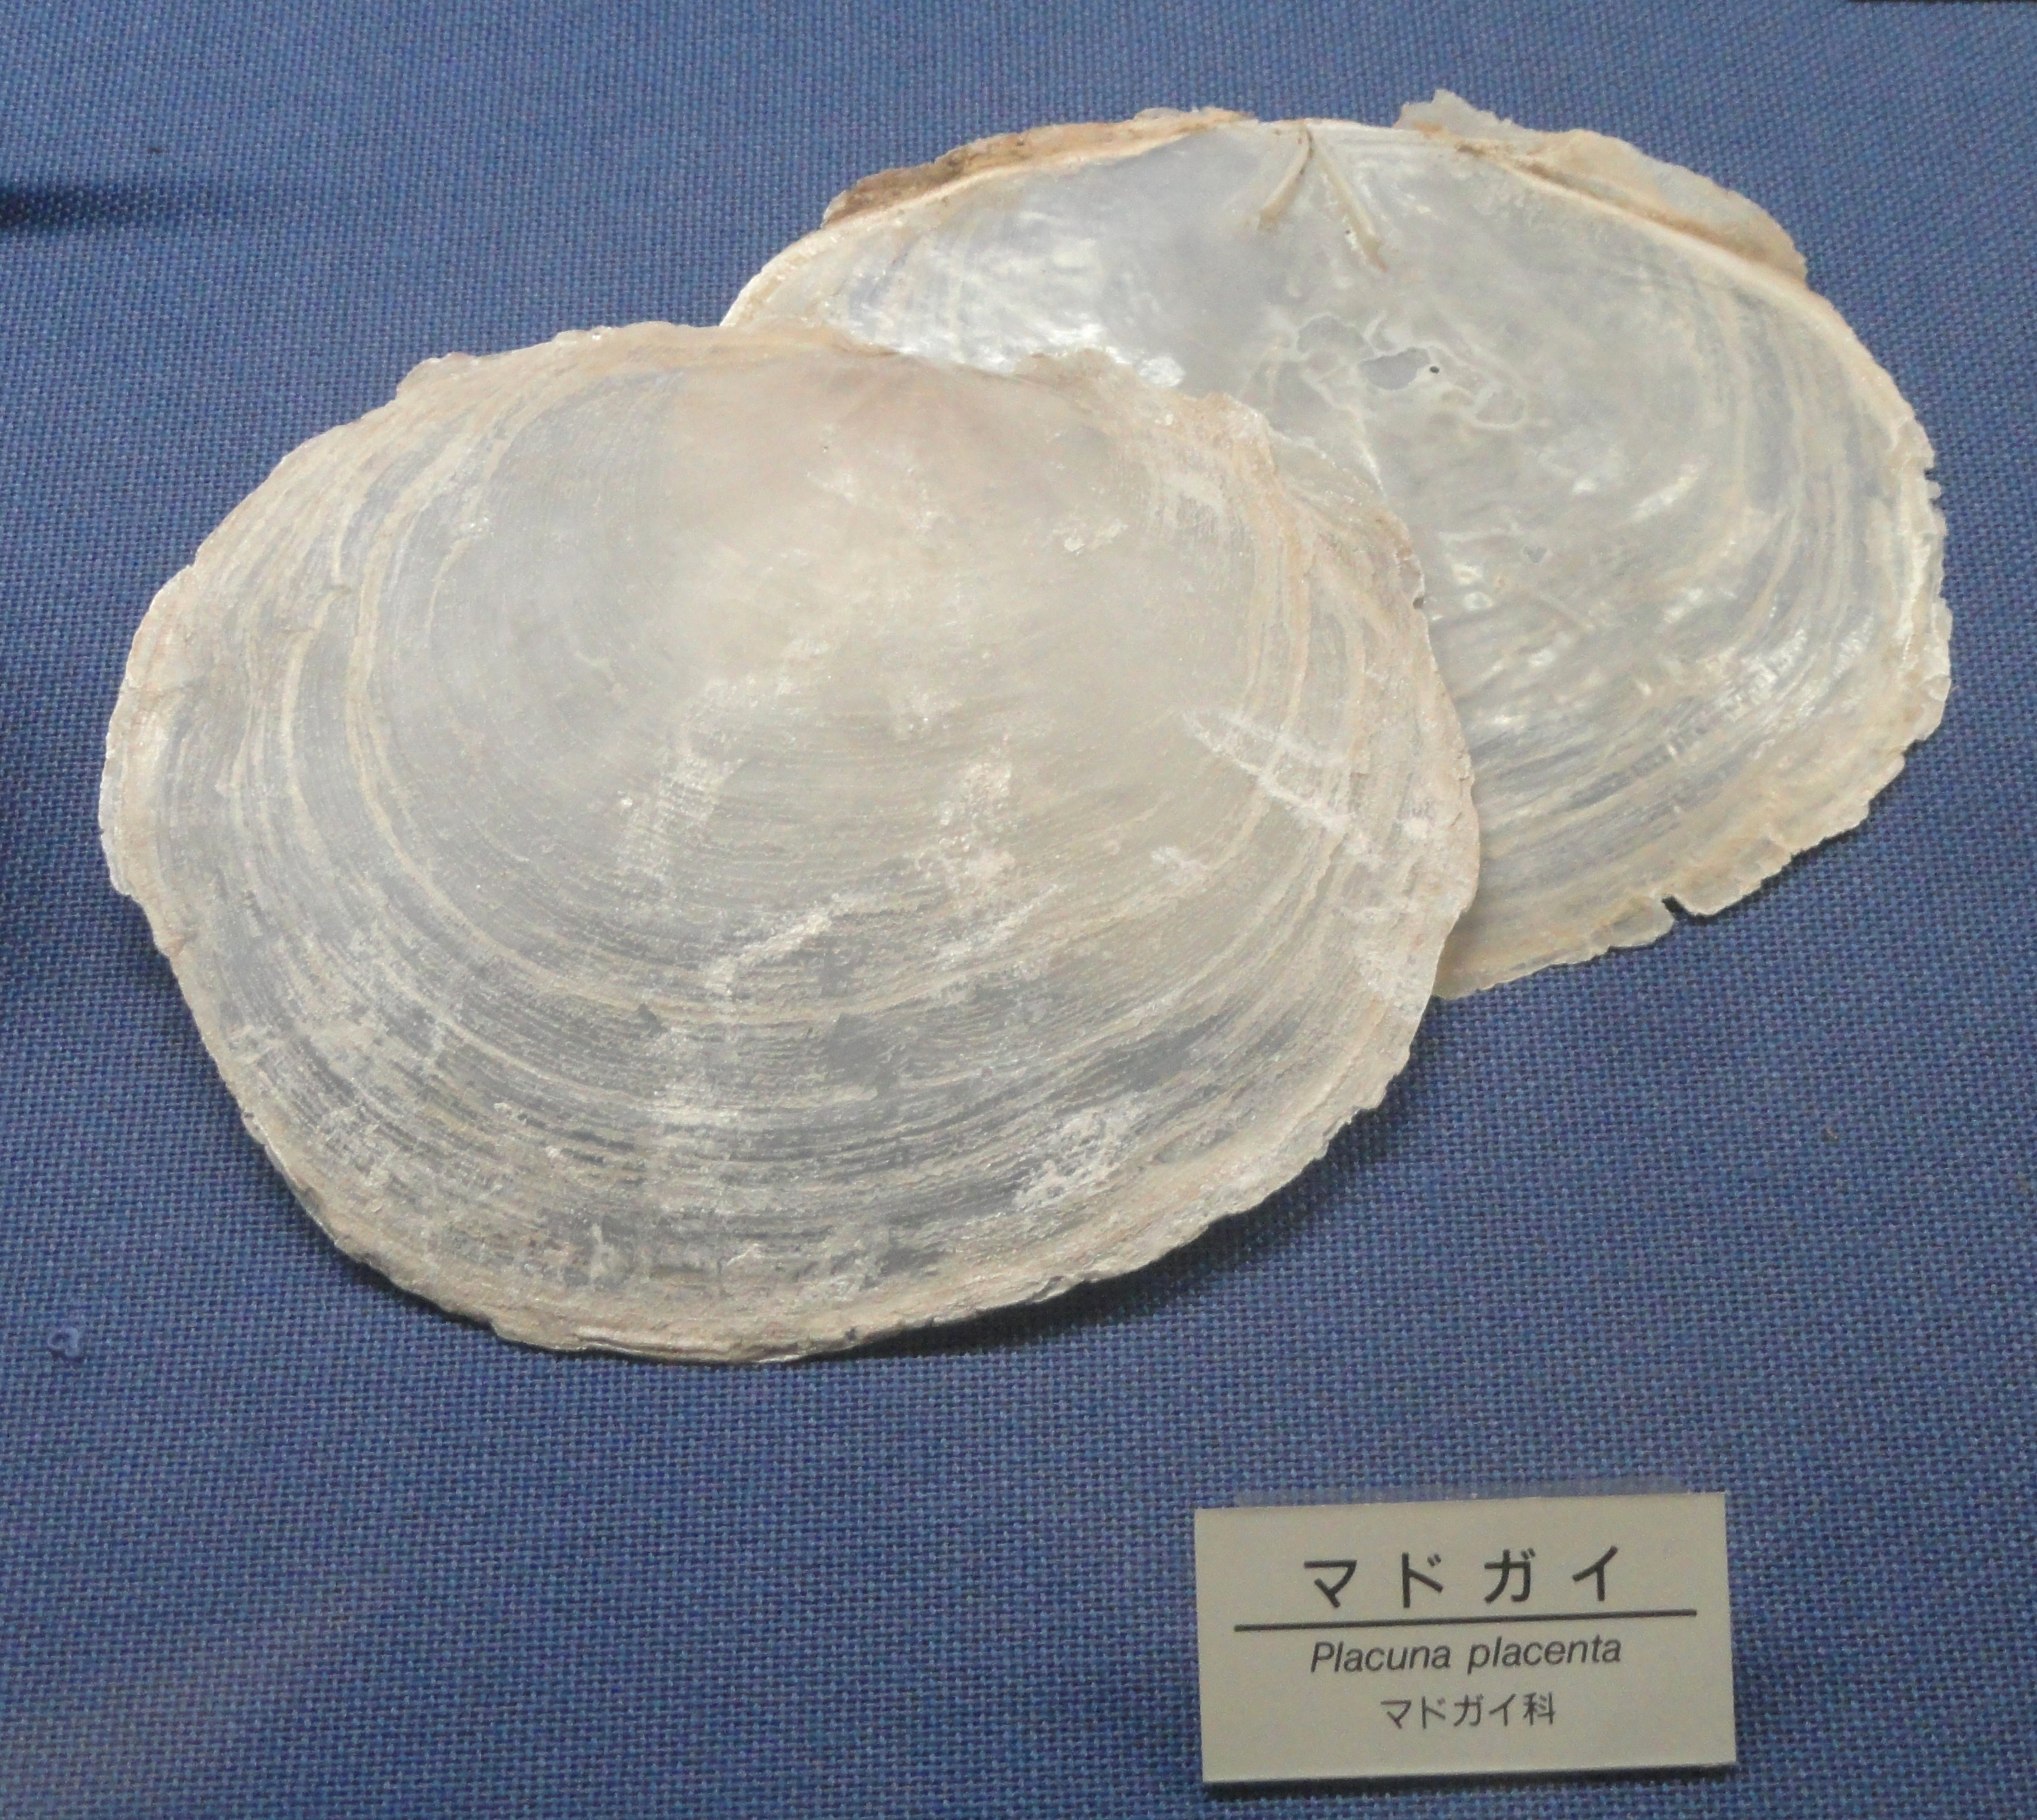 Placuna Placenta, or capiz shell, is a bivalve mollusk abundant in the Philippines.